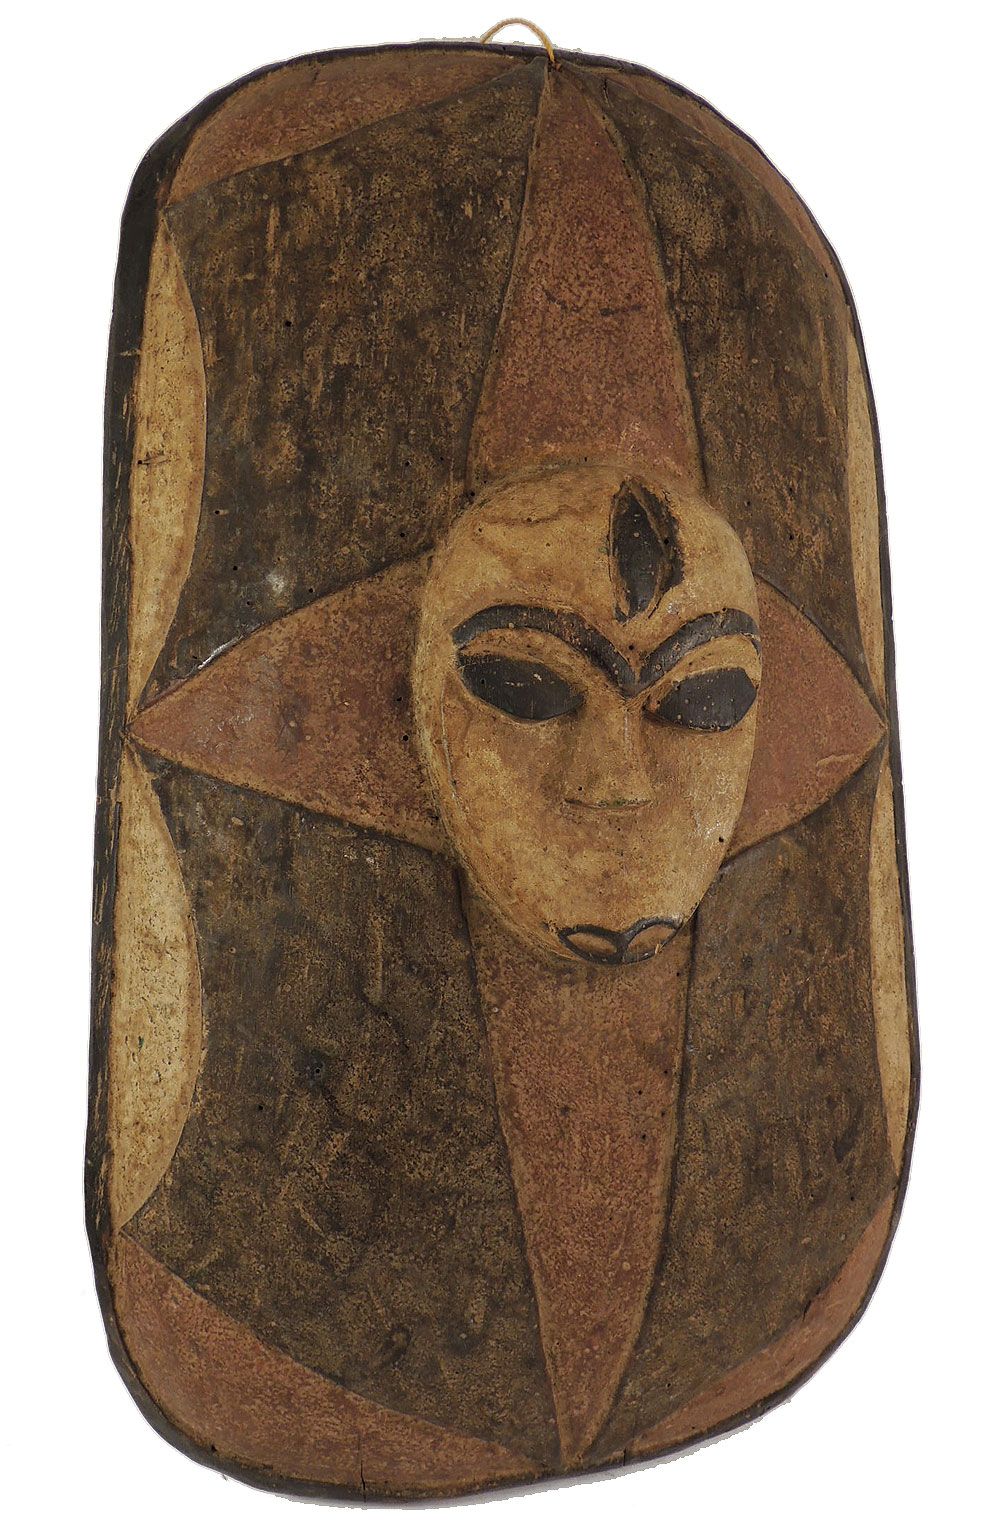 Fon Shield Wood with Mask Face Benin African Art - Shields - Metal